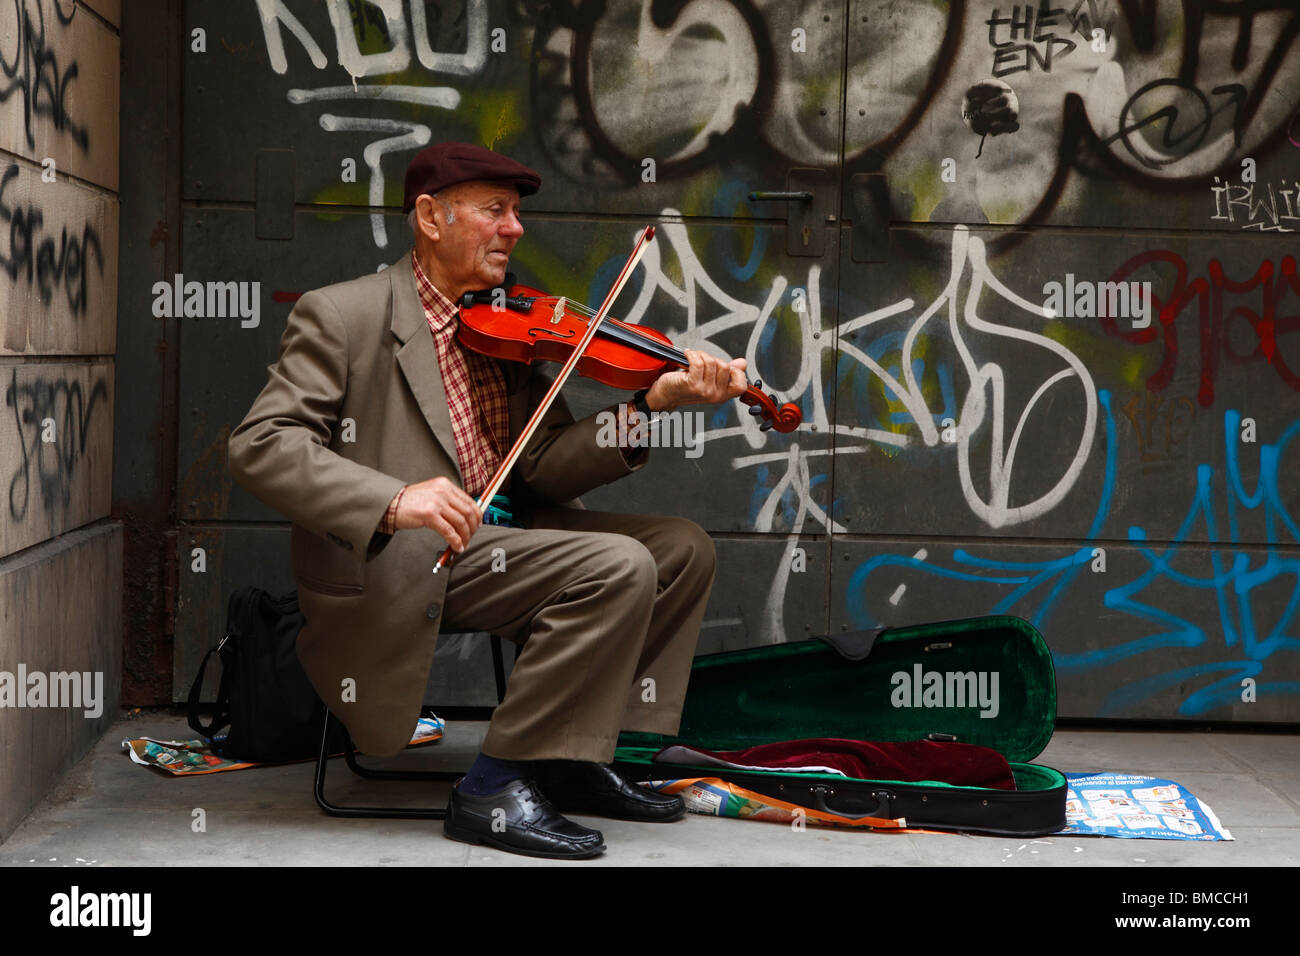 Violinist in Florence, Italy - Stock Image